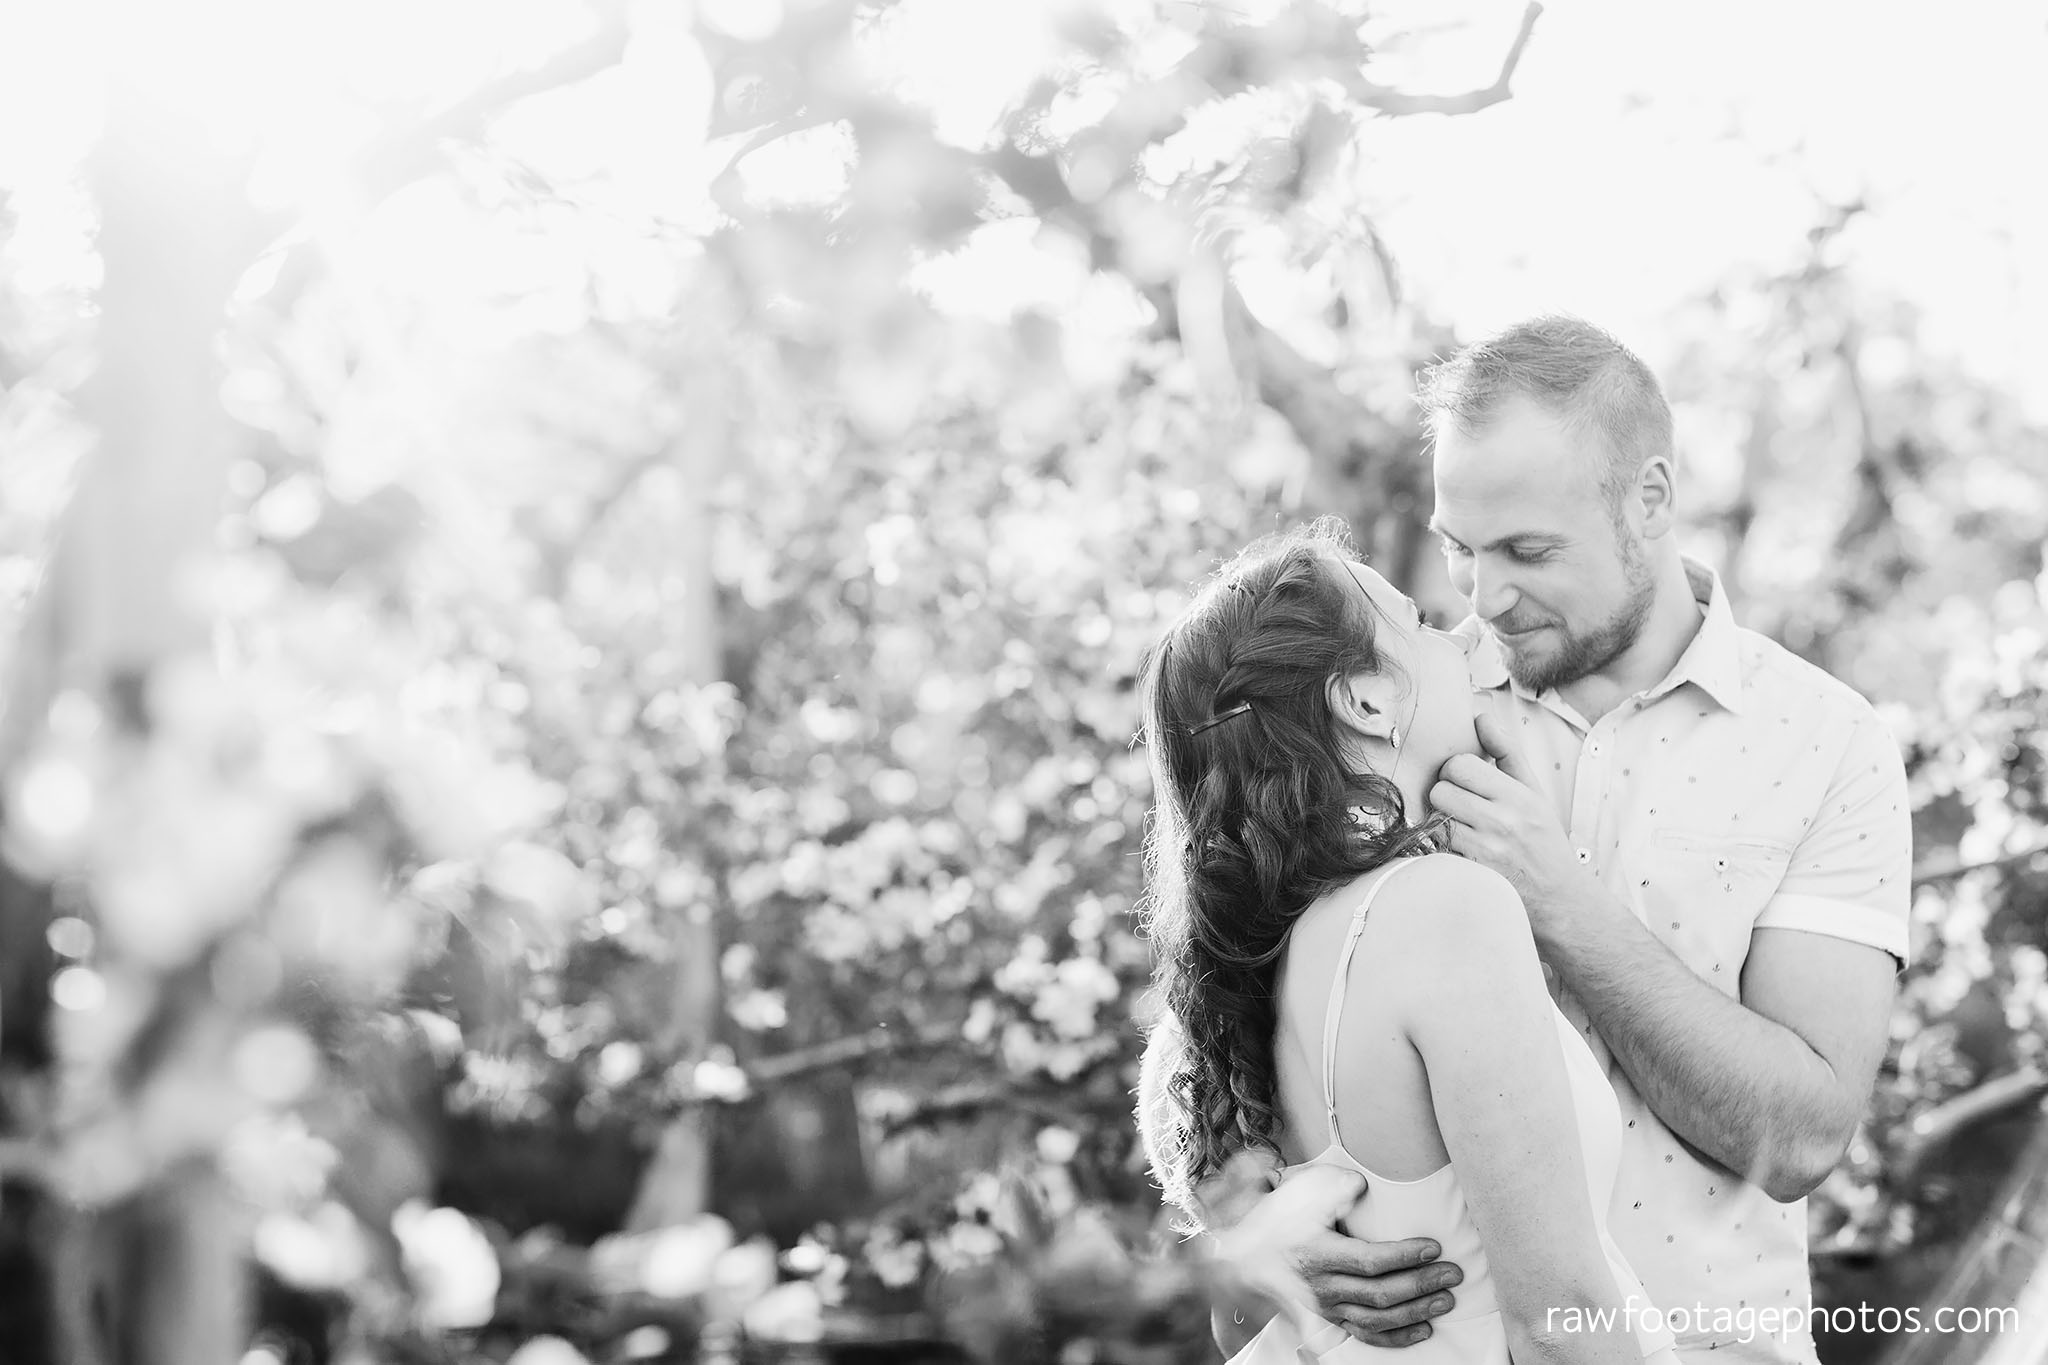 london_ontario_wedding_photographer-raw_footage_photography-engagement_session-airport_session-airplane-balloons-apple_orchard-spring_blooms-apple_blossoms036.jpg